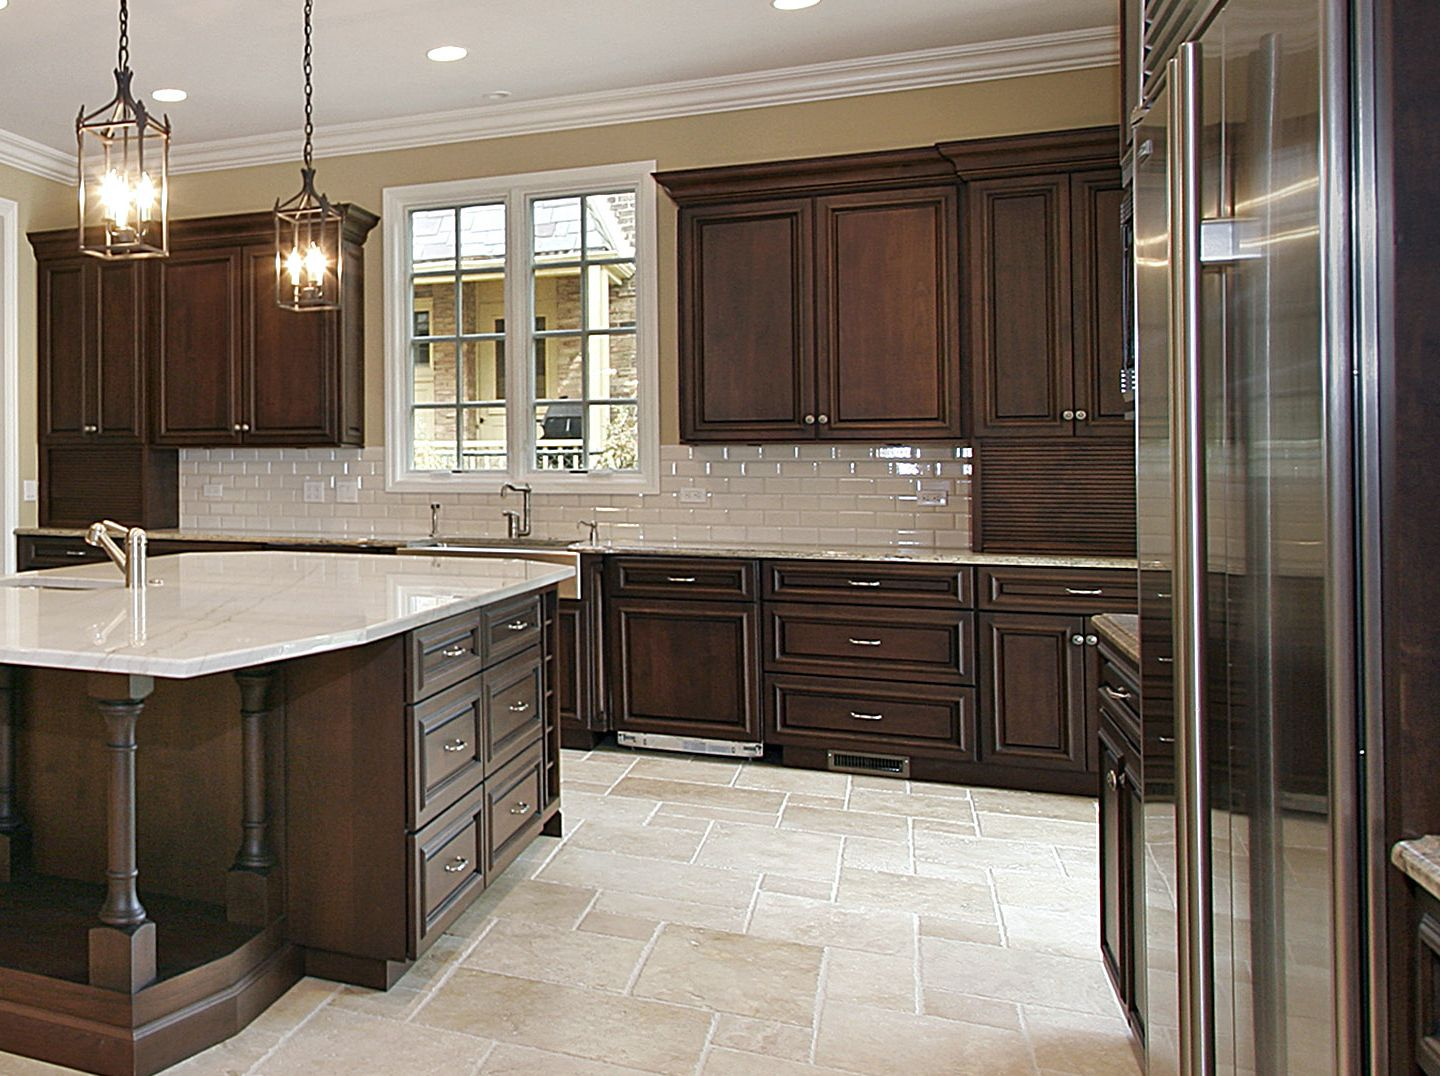 Kitchen Colors With Brown Cabinets classic dark cherry kitchen with large island. www.prasadakitchens